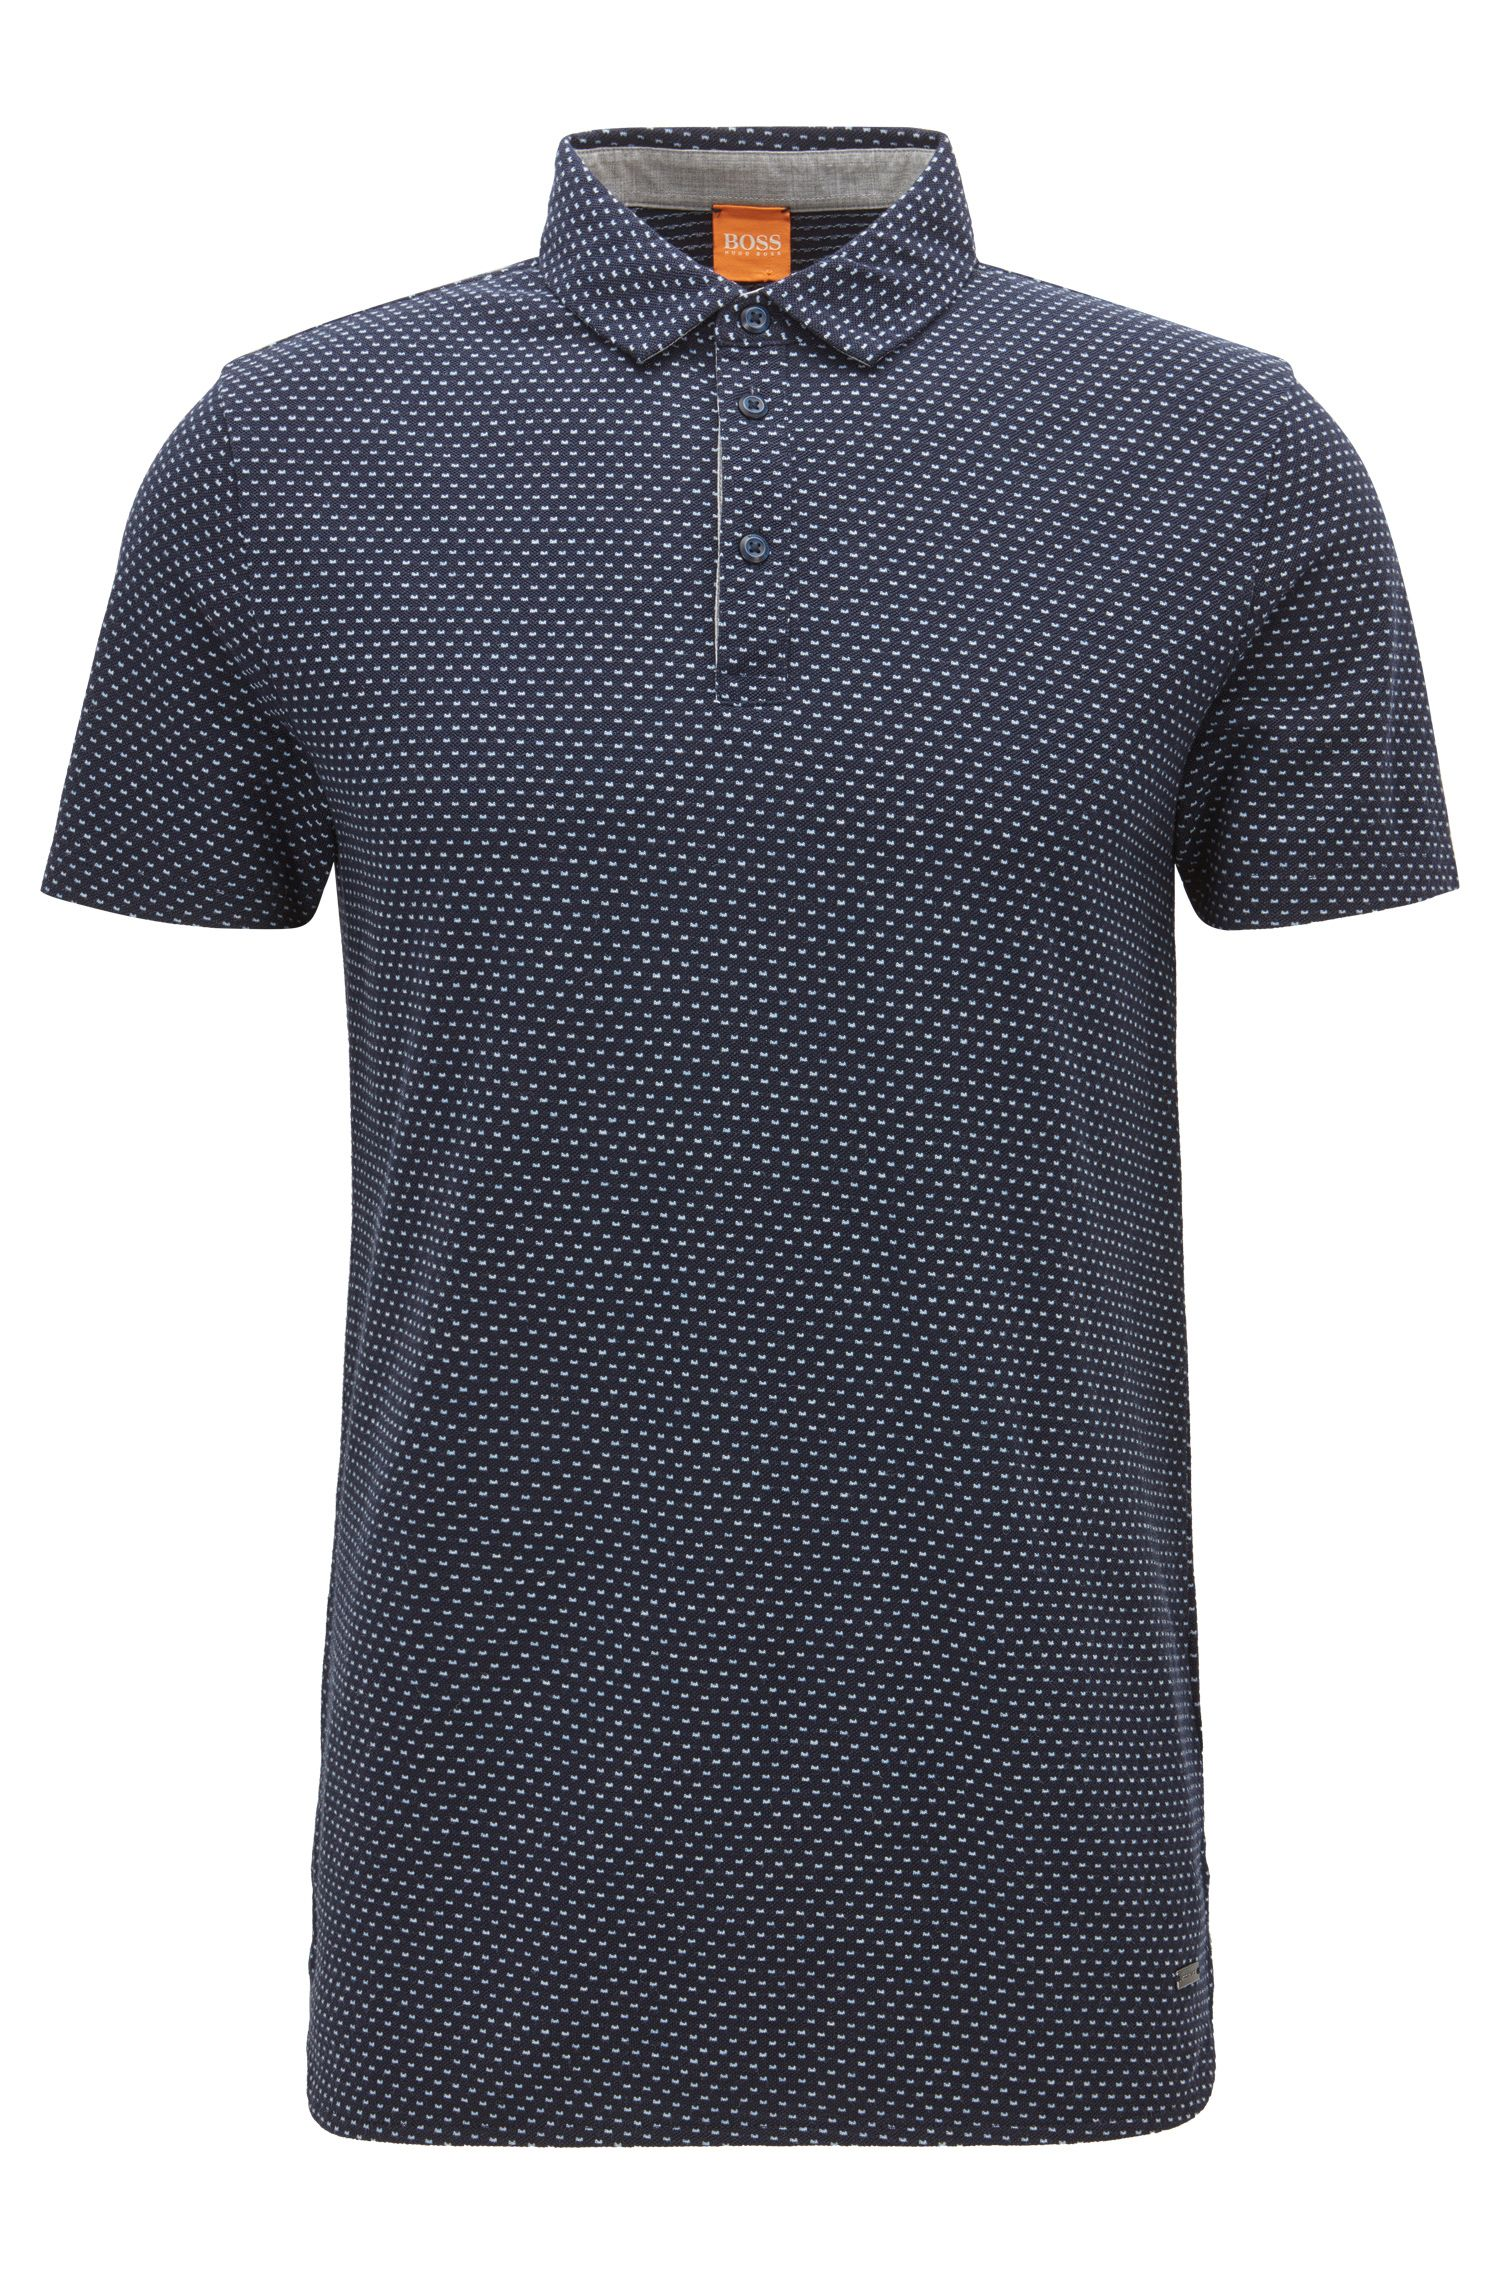 'Perfect' | Regular Fit, Polka Dot Piqué Cotton Polo Shirt